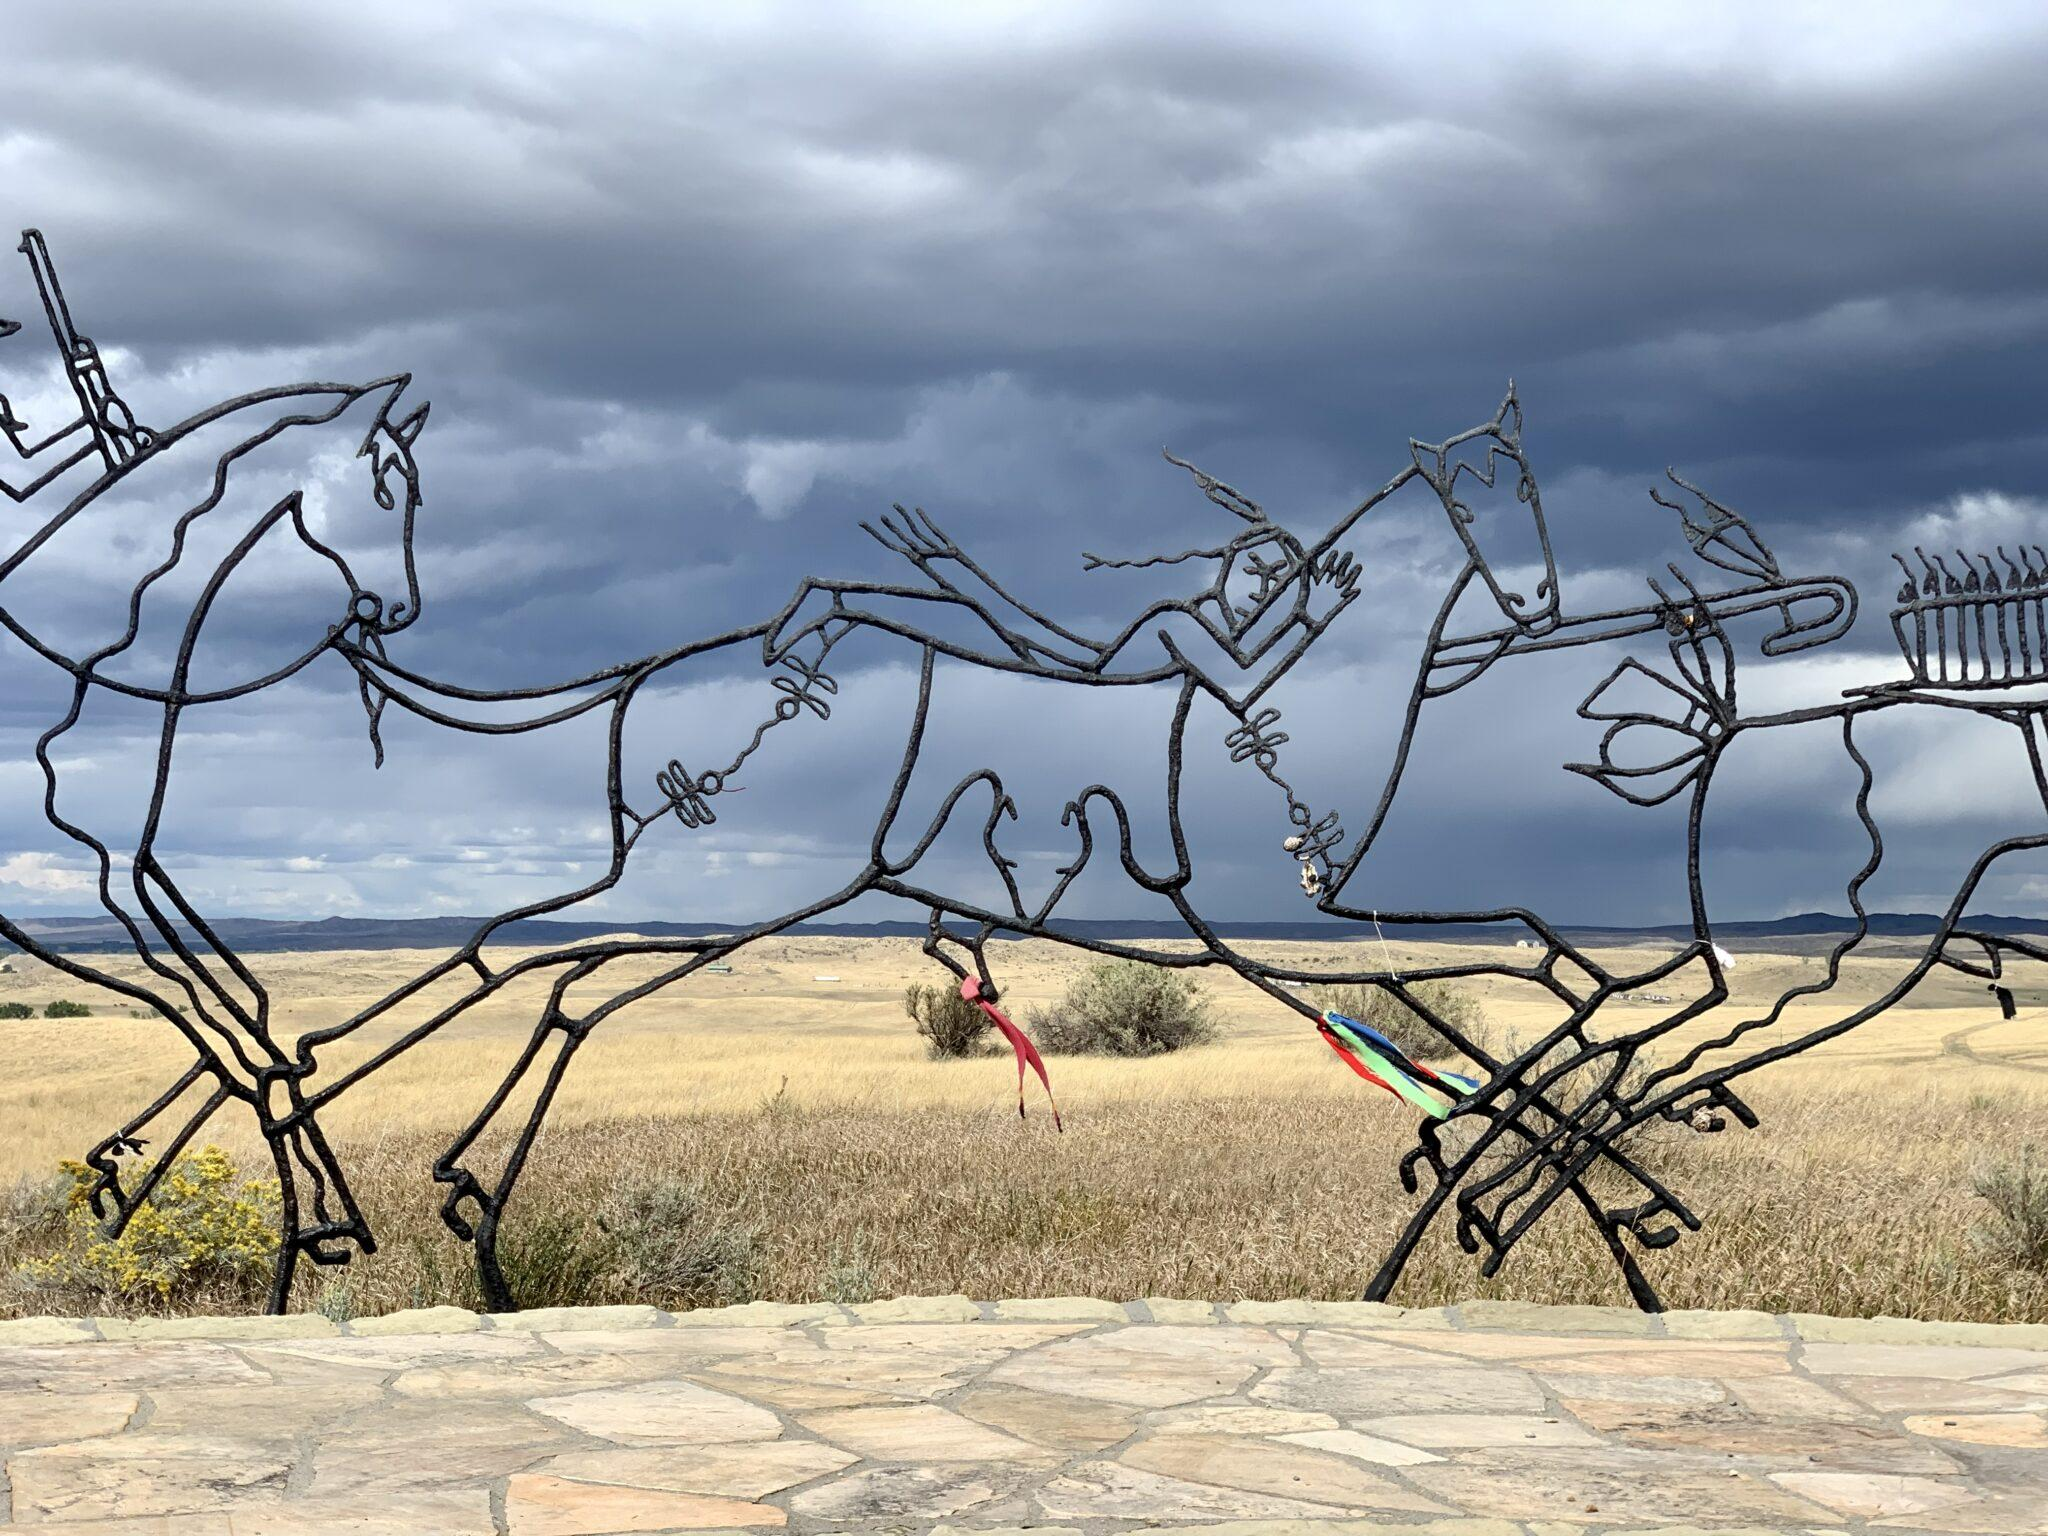 Statue of Indians on horses made of metal frame